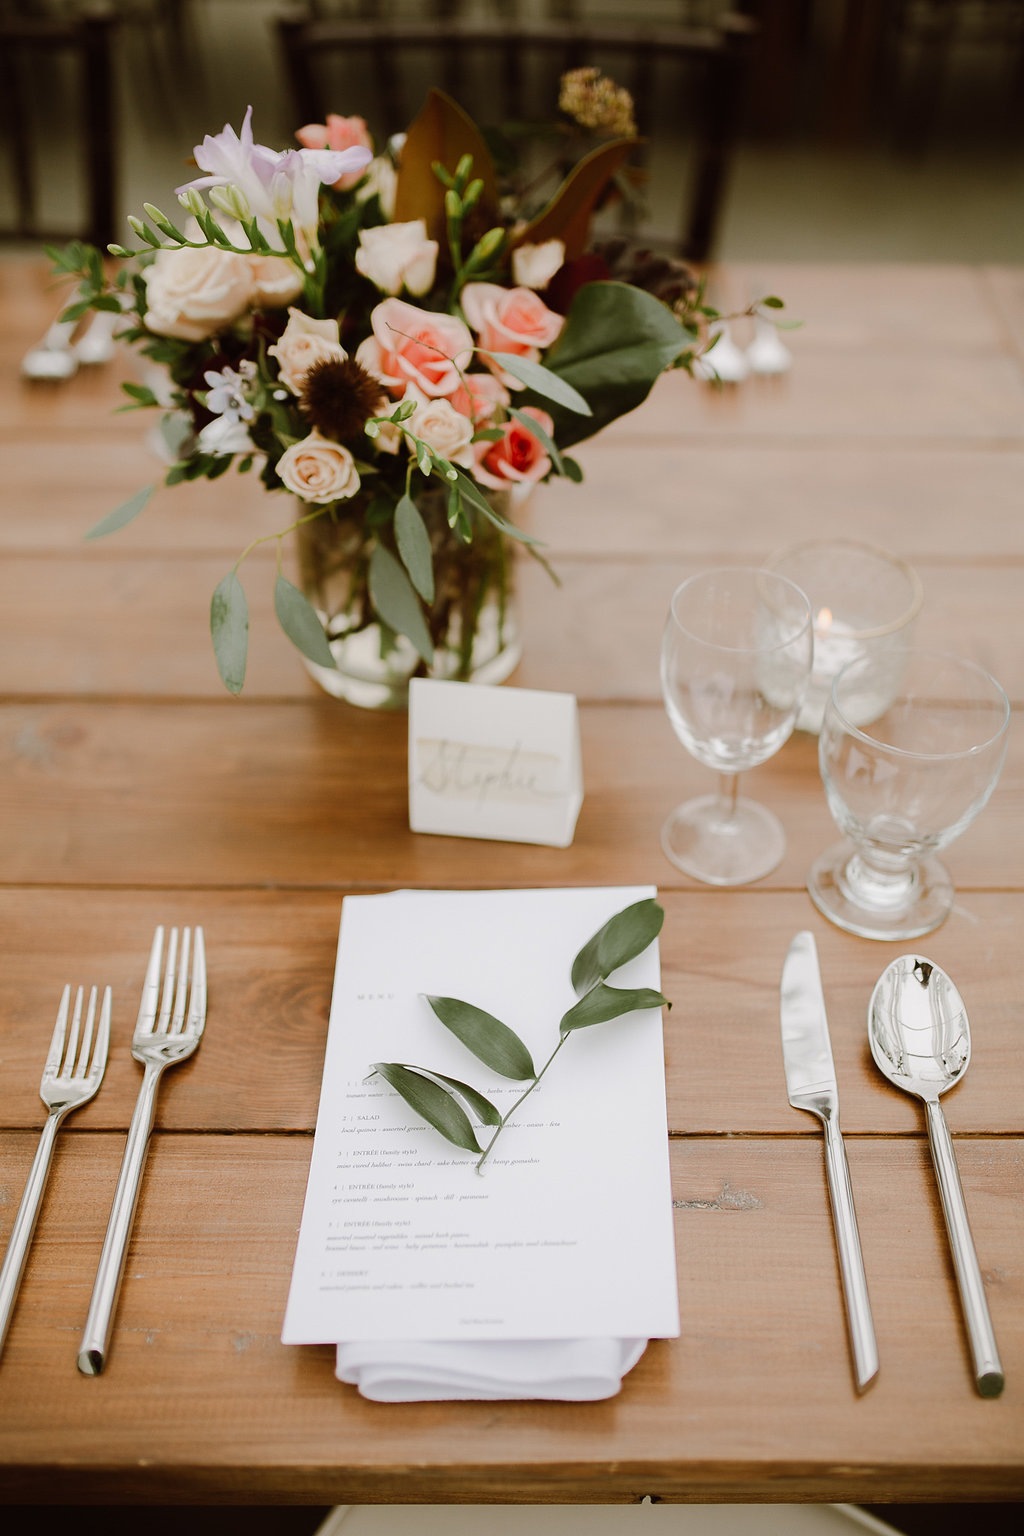 Wedding Place Setting with Greenery Sprig - Wedding Florists Winnipeg